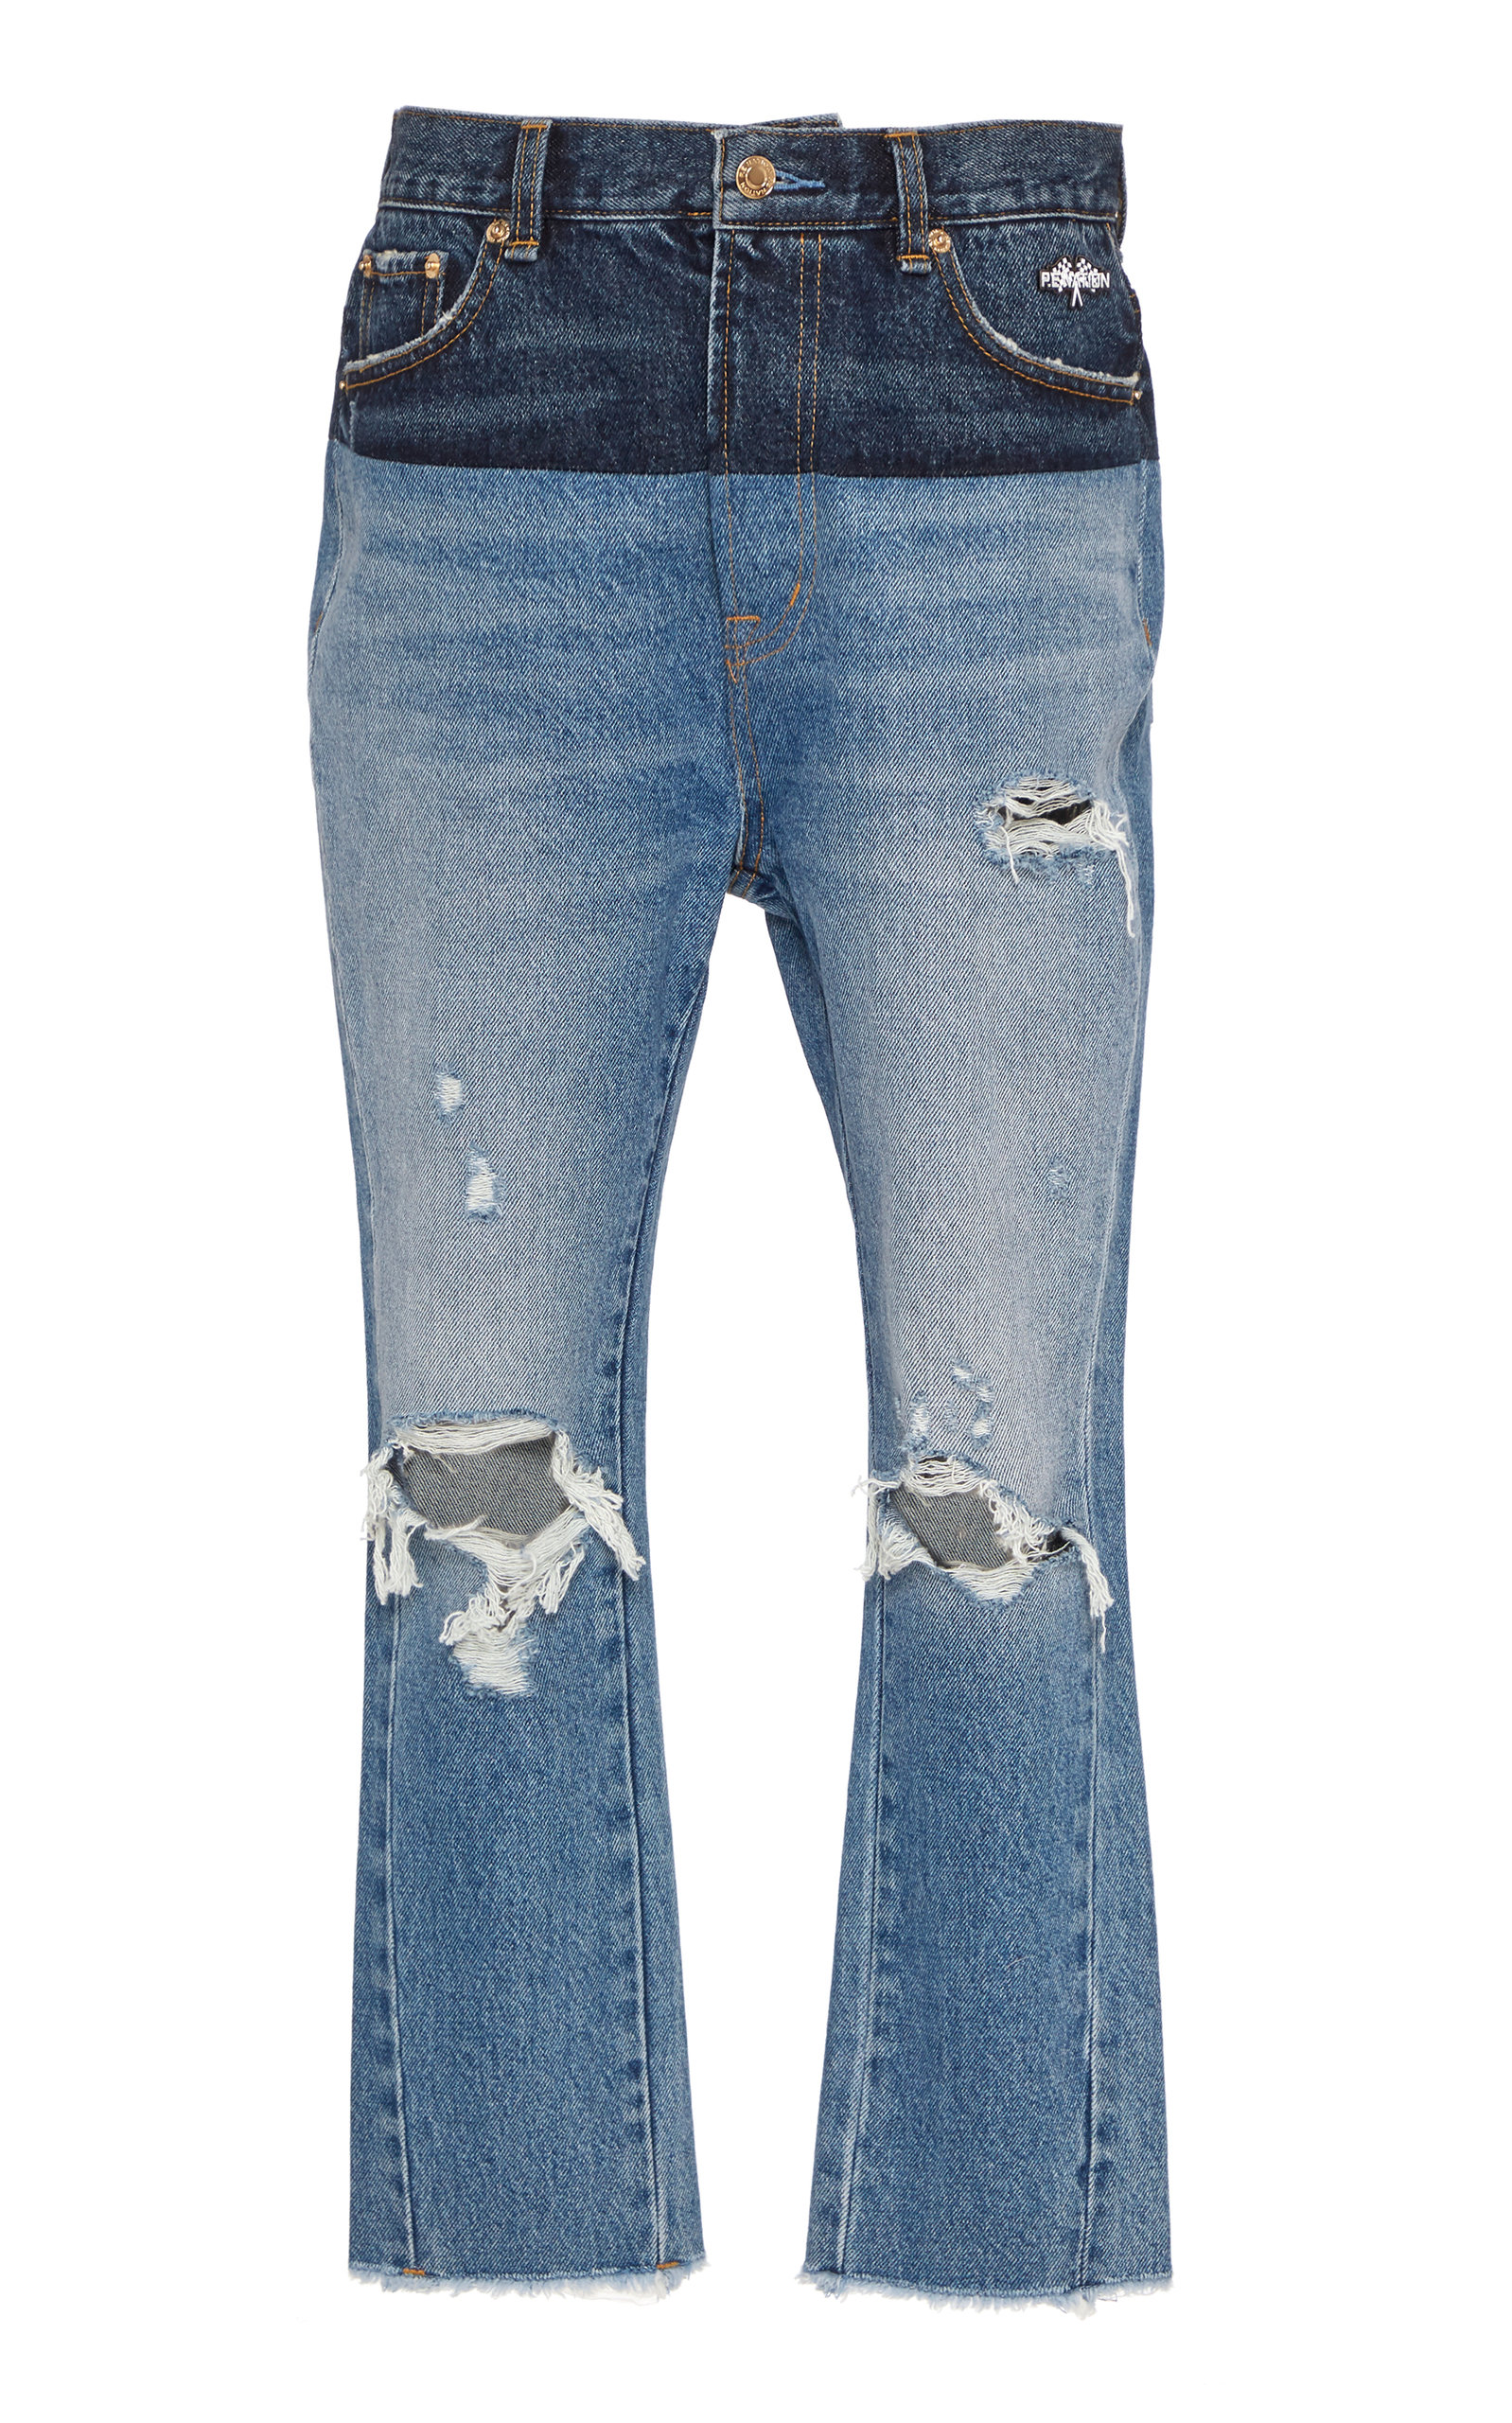 P.e Nation Jeans The 1988 Mid-Rise Jean